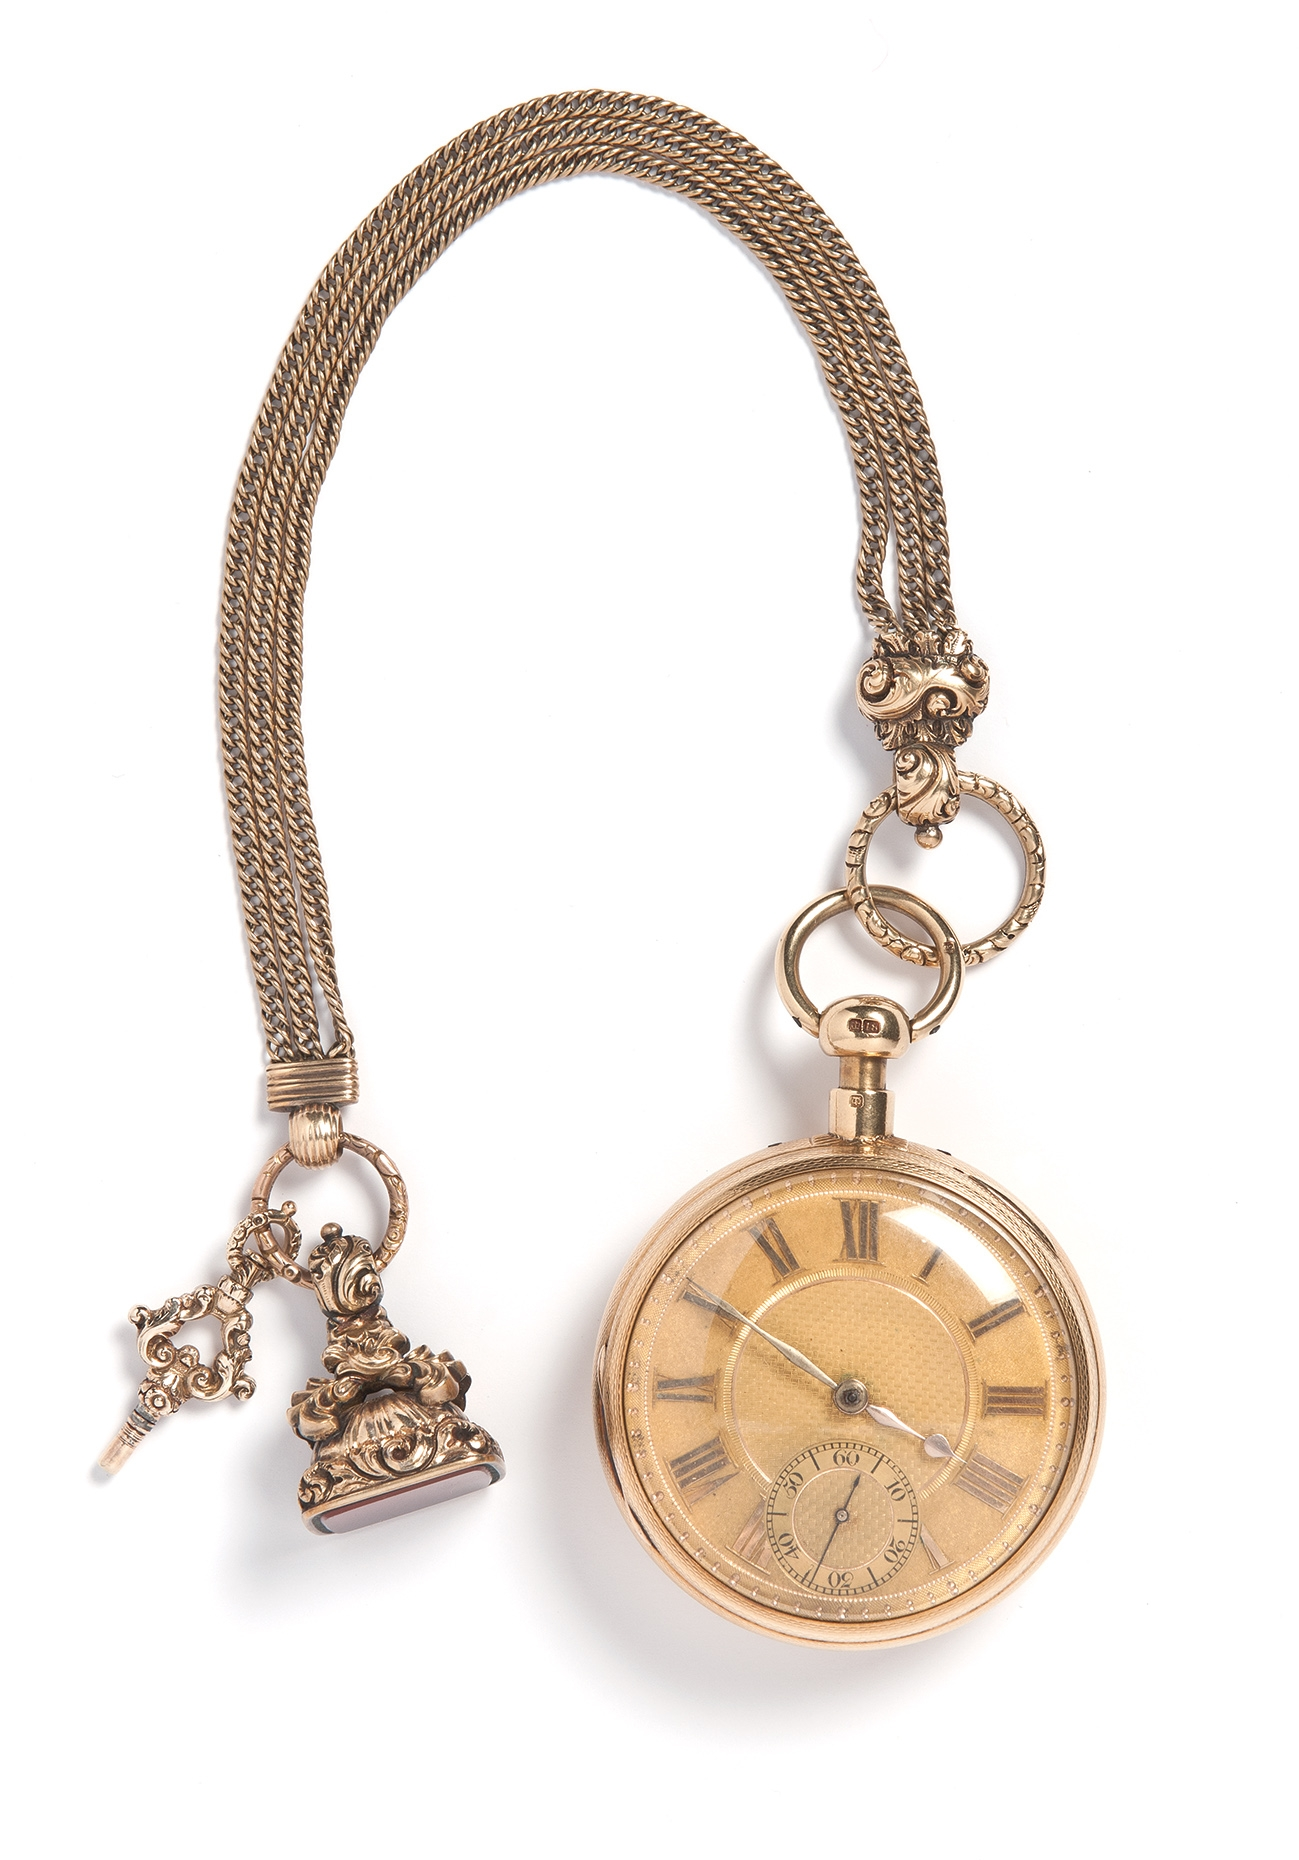 Fob watch on heavy gold chain.